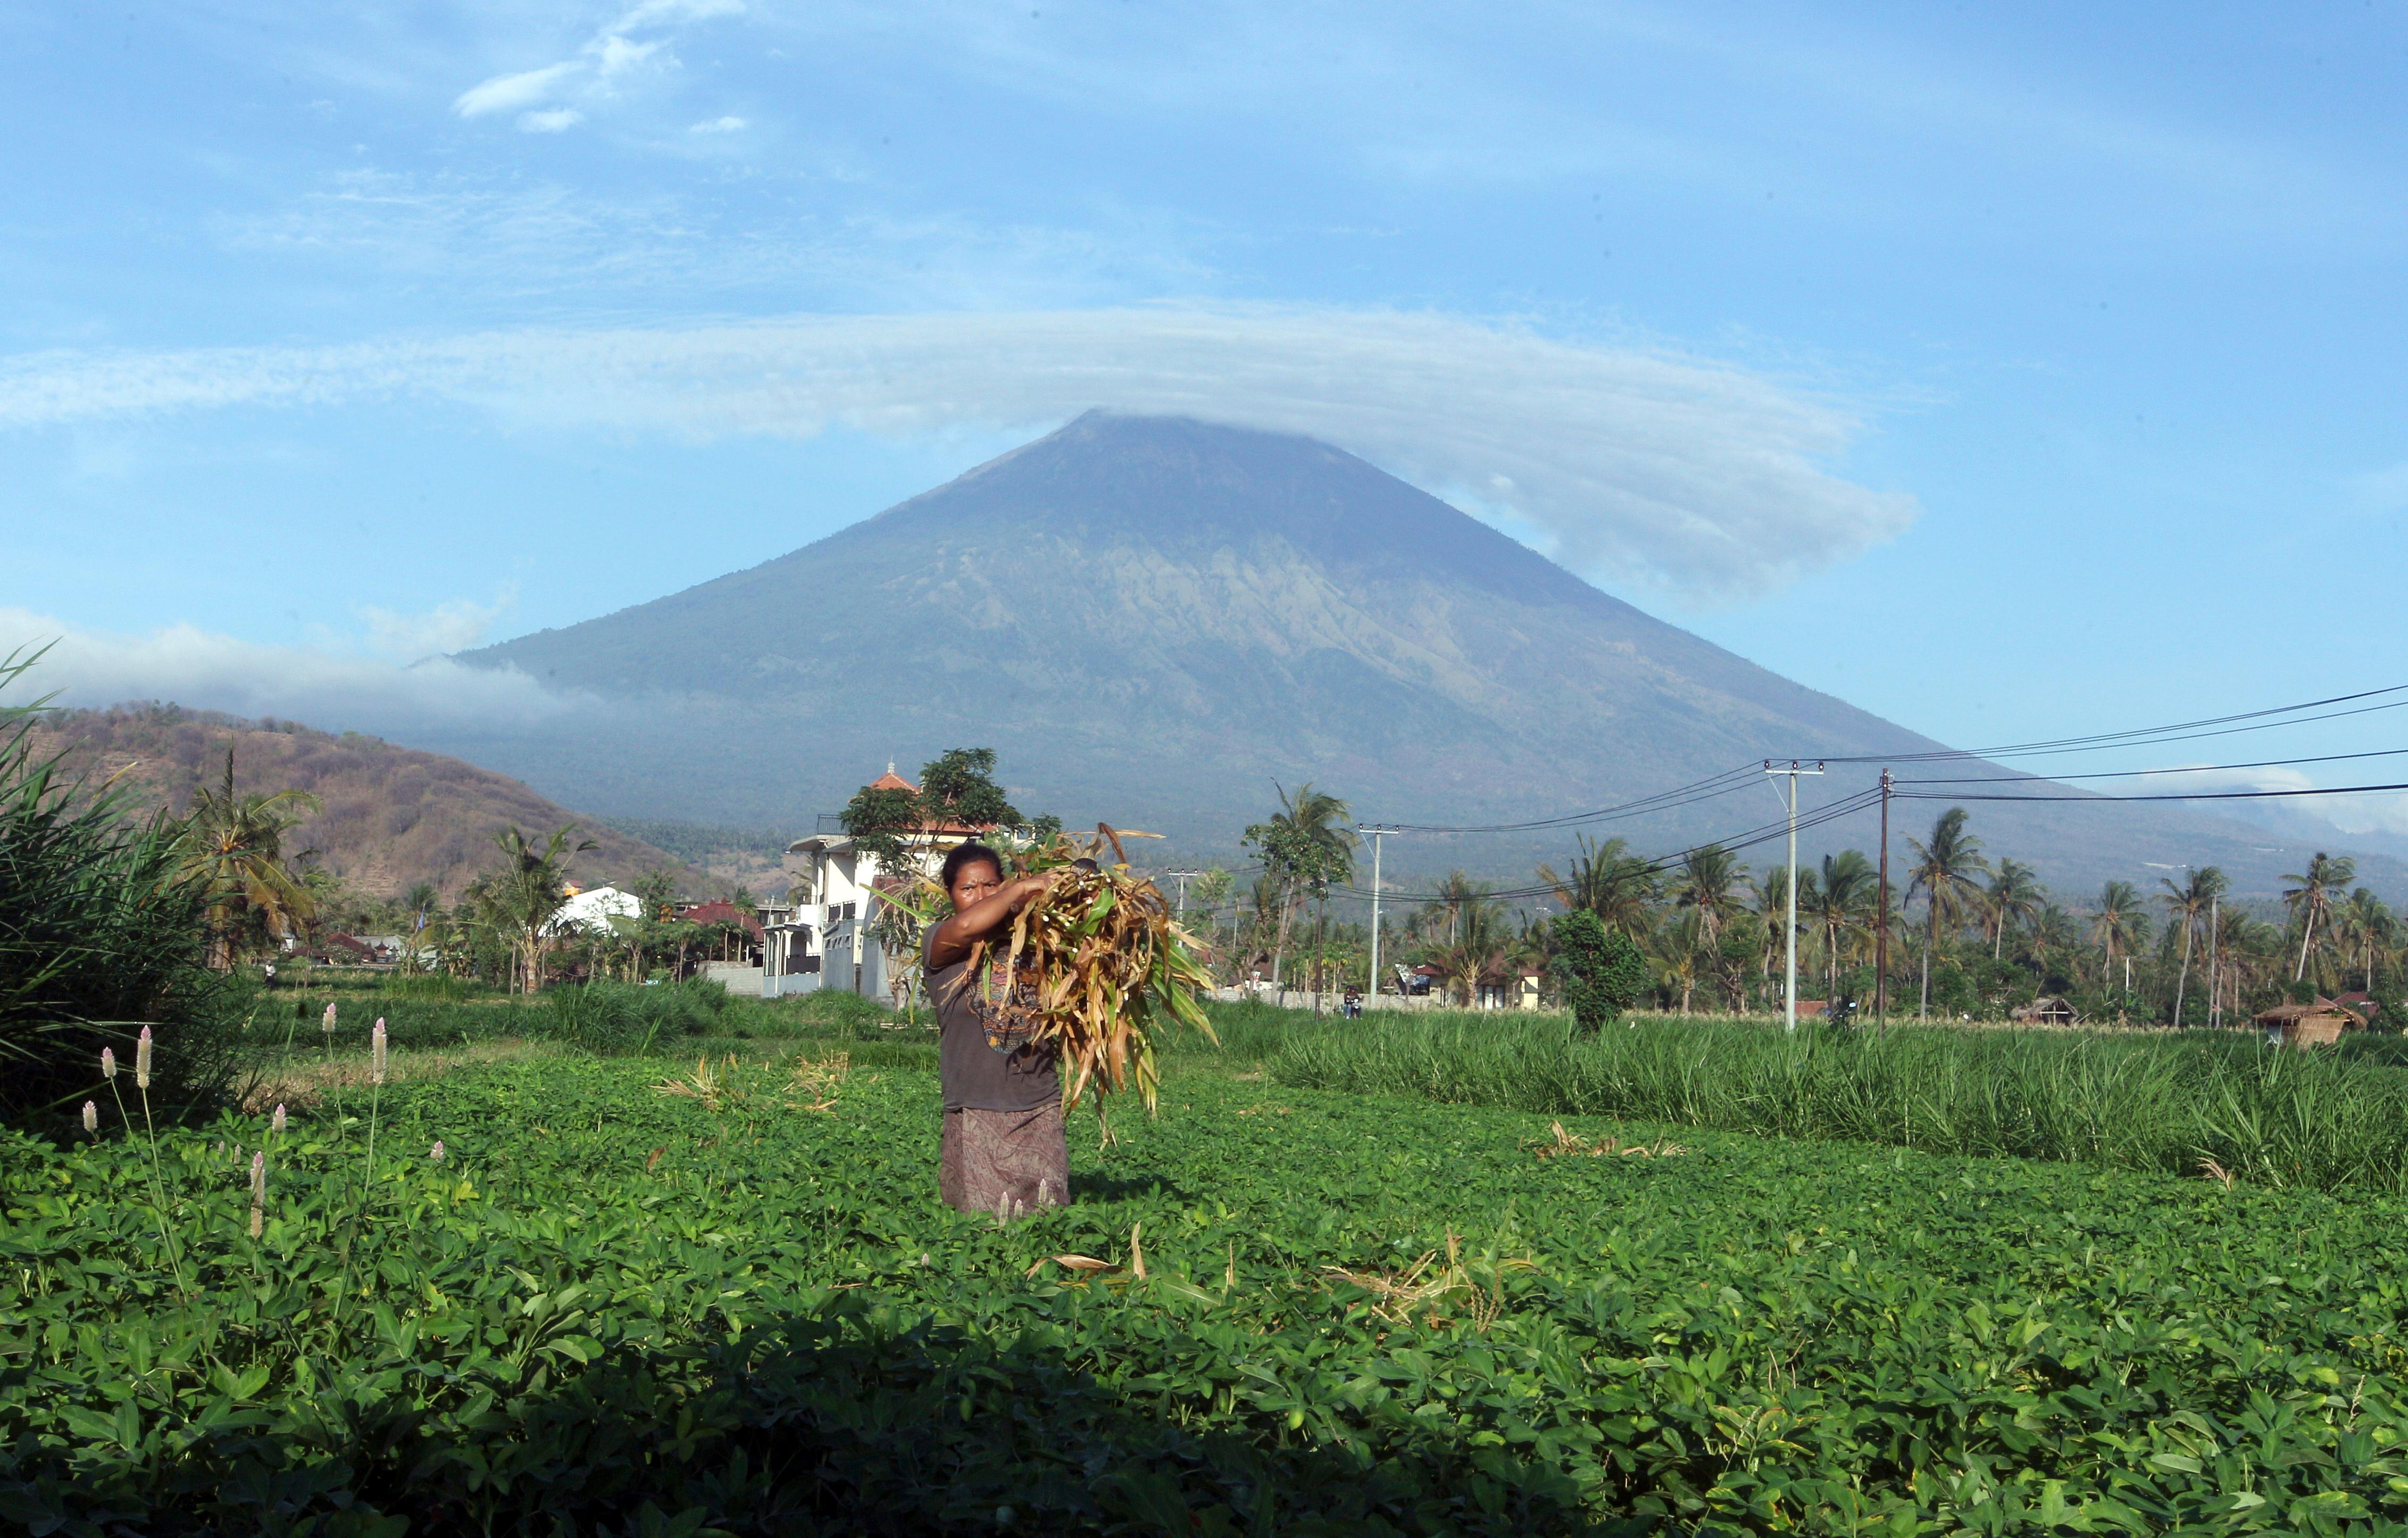 UPDATES CAPTION - A woman works at a field with Mount Agung seen in the background in Amed, Bali, Indonesia, Tuesday, Sept. 26, 2017. More than 57,000 people have fled the surrounds of Mount Agung volcano on the Indonesian tourist island of Bali, fearing an imminent eruption, officials said Tuesday. (AP Photo/Firdia Lisnawati)